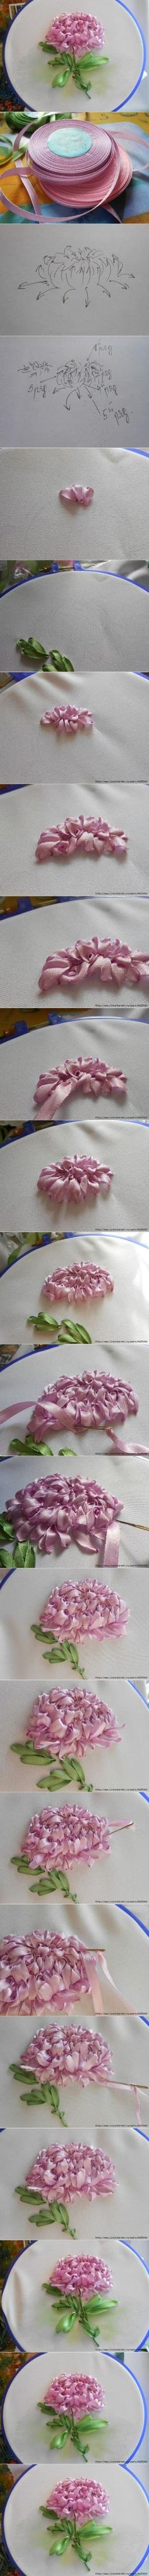 best embroidery images on pinterest ribbon art ribbon flower